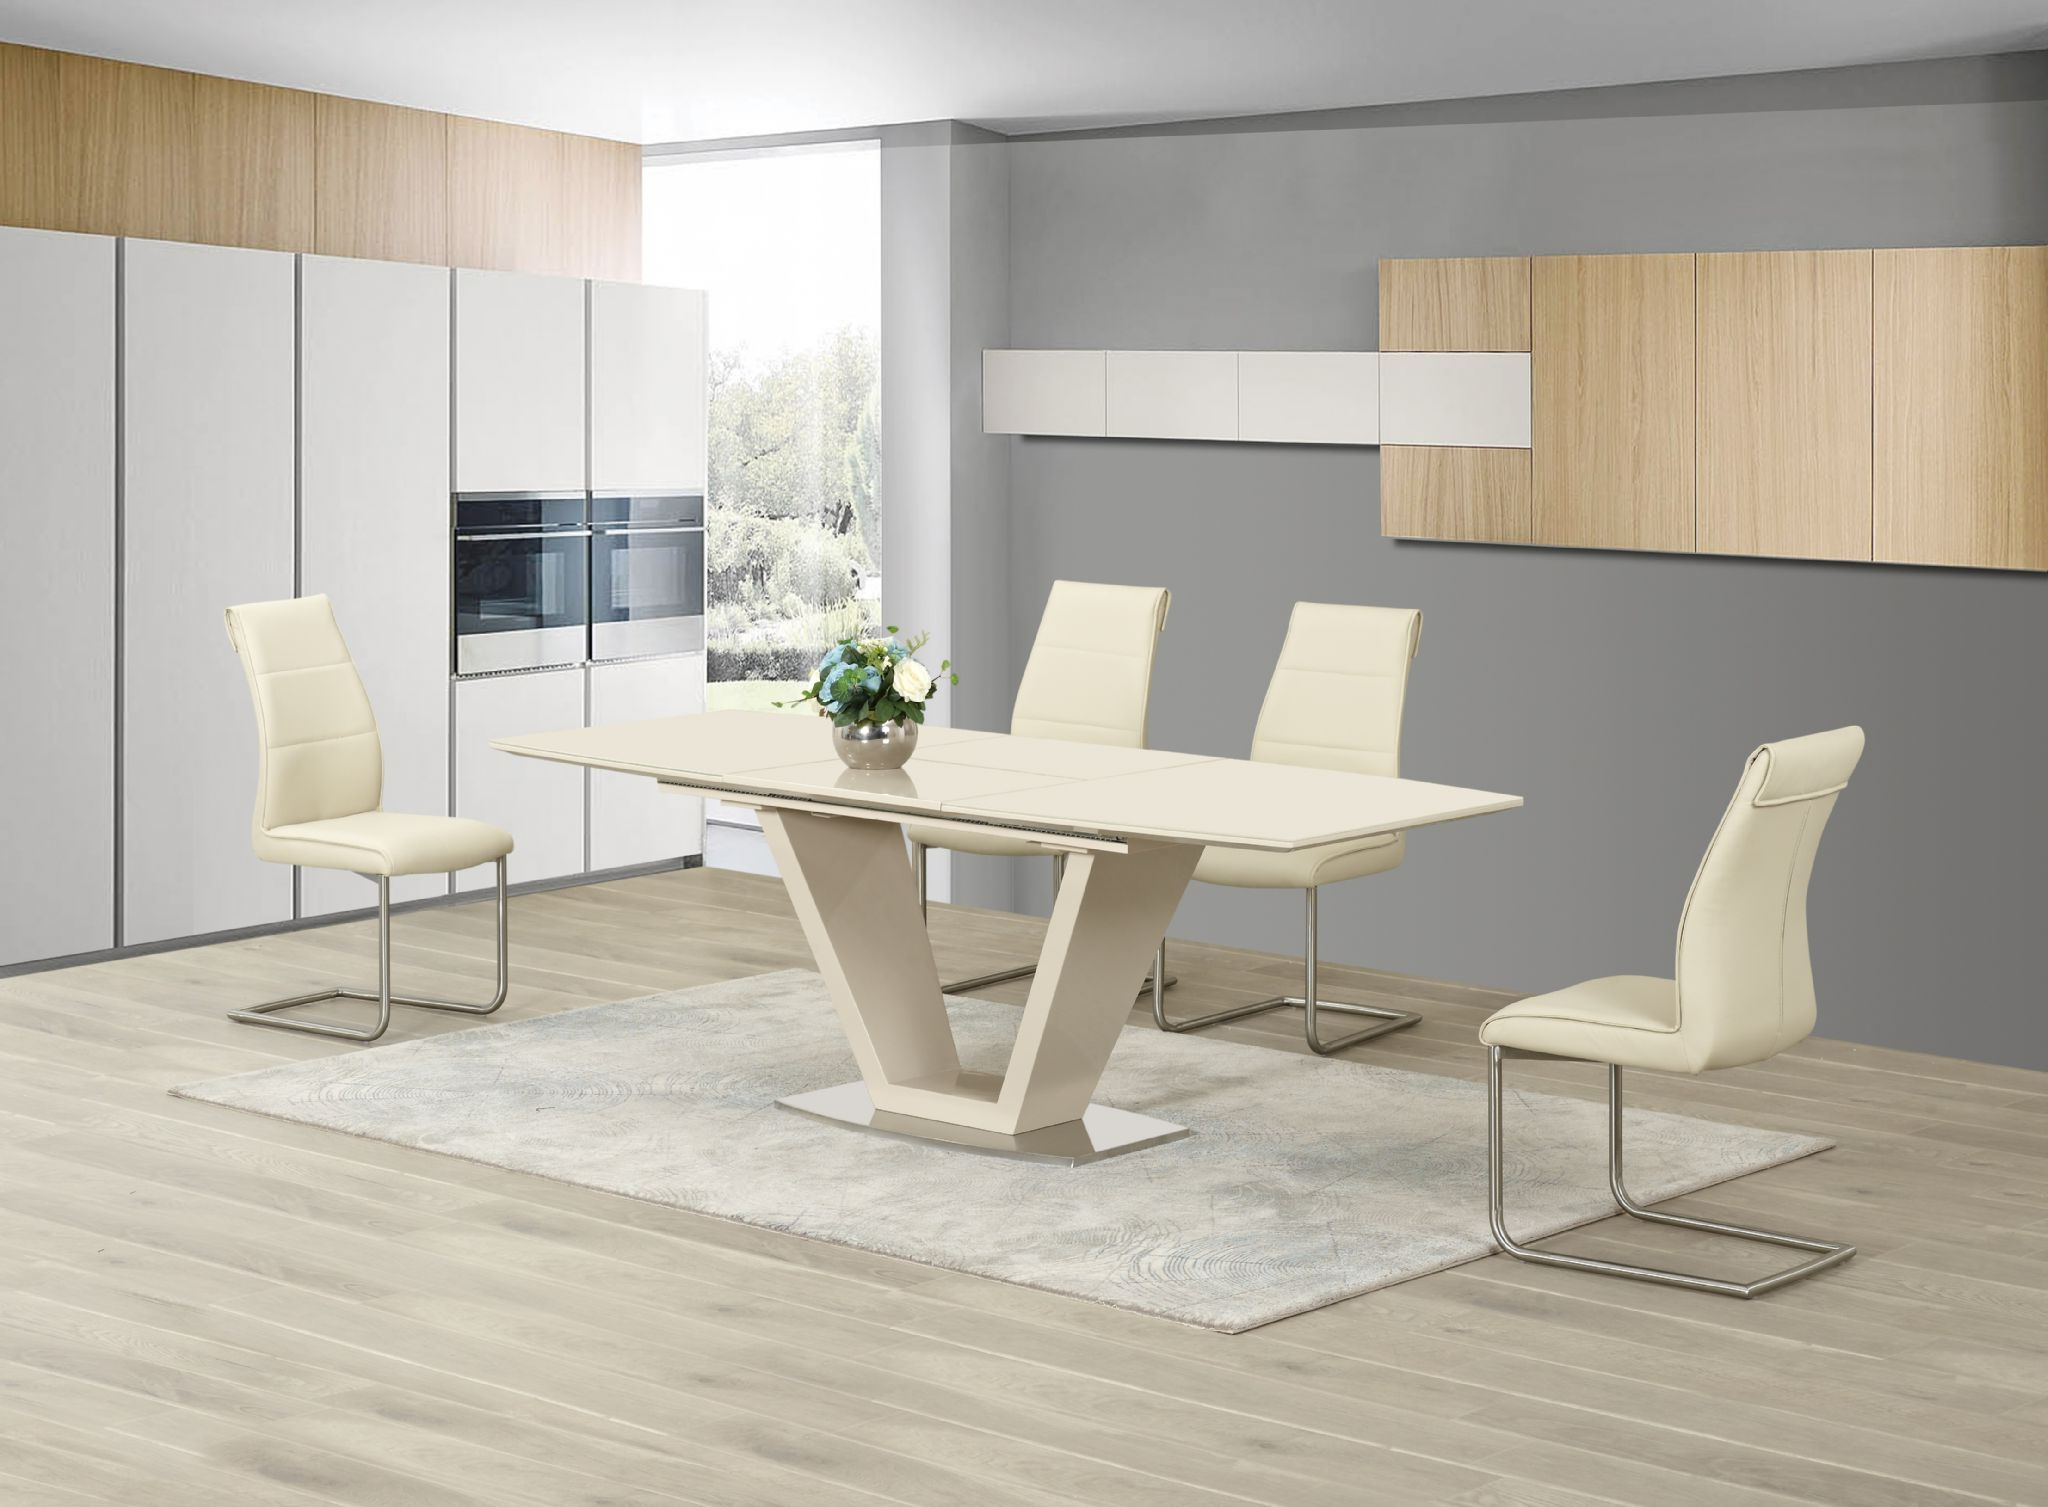 Preferred Floris Cream Extending Dining Table High Gloss Regarding 8 Seater Wood Contemporary Dining Tables With Extension Leaf (View 21 of 25)